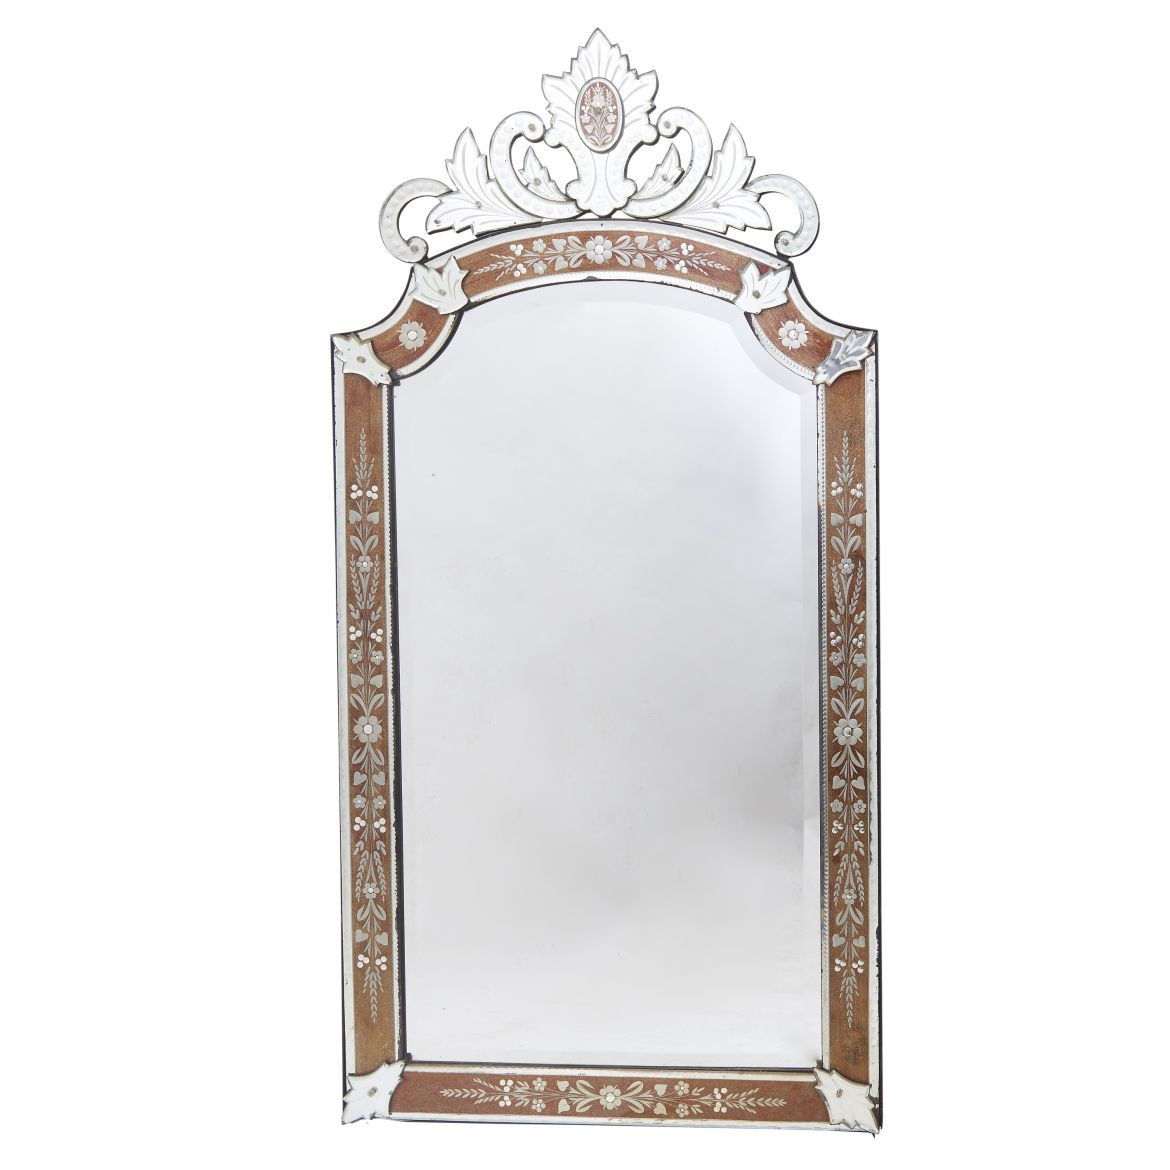 French Venetian Style Mirror With Gold Eglomisée Frame